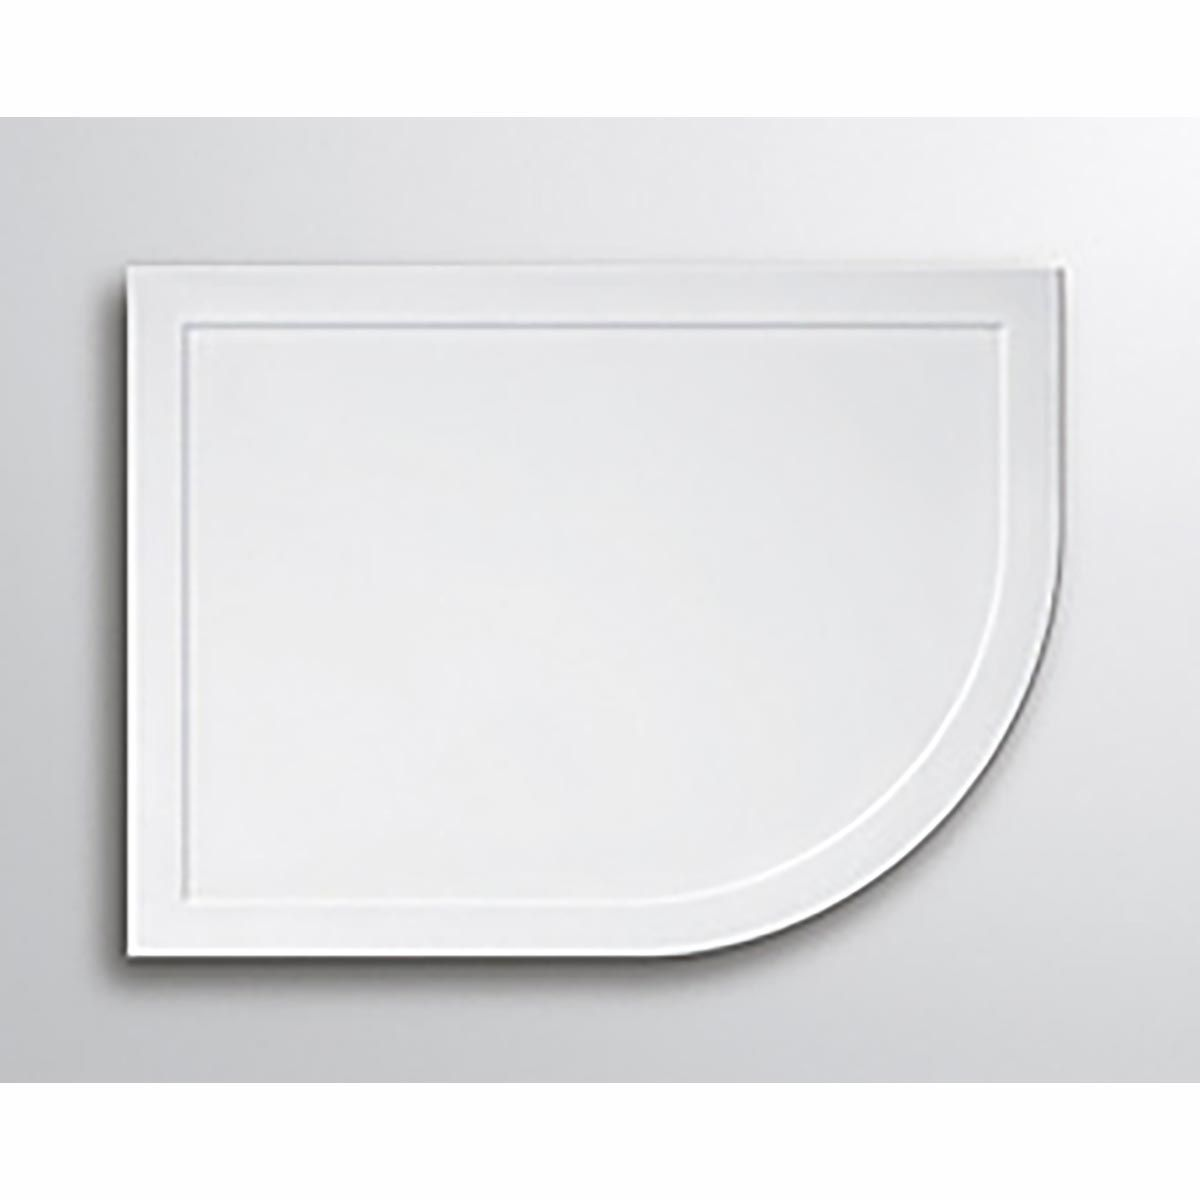 Lakes White Stone Resin/ABS Offset Quadrant Tray Right Hand 1000mm X 800mm